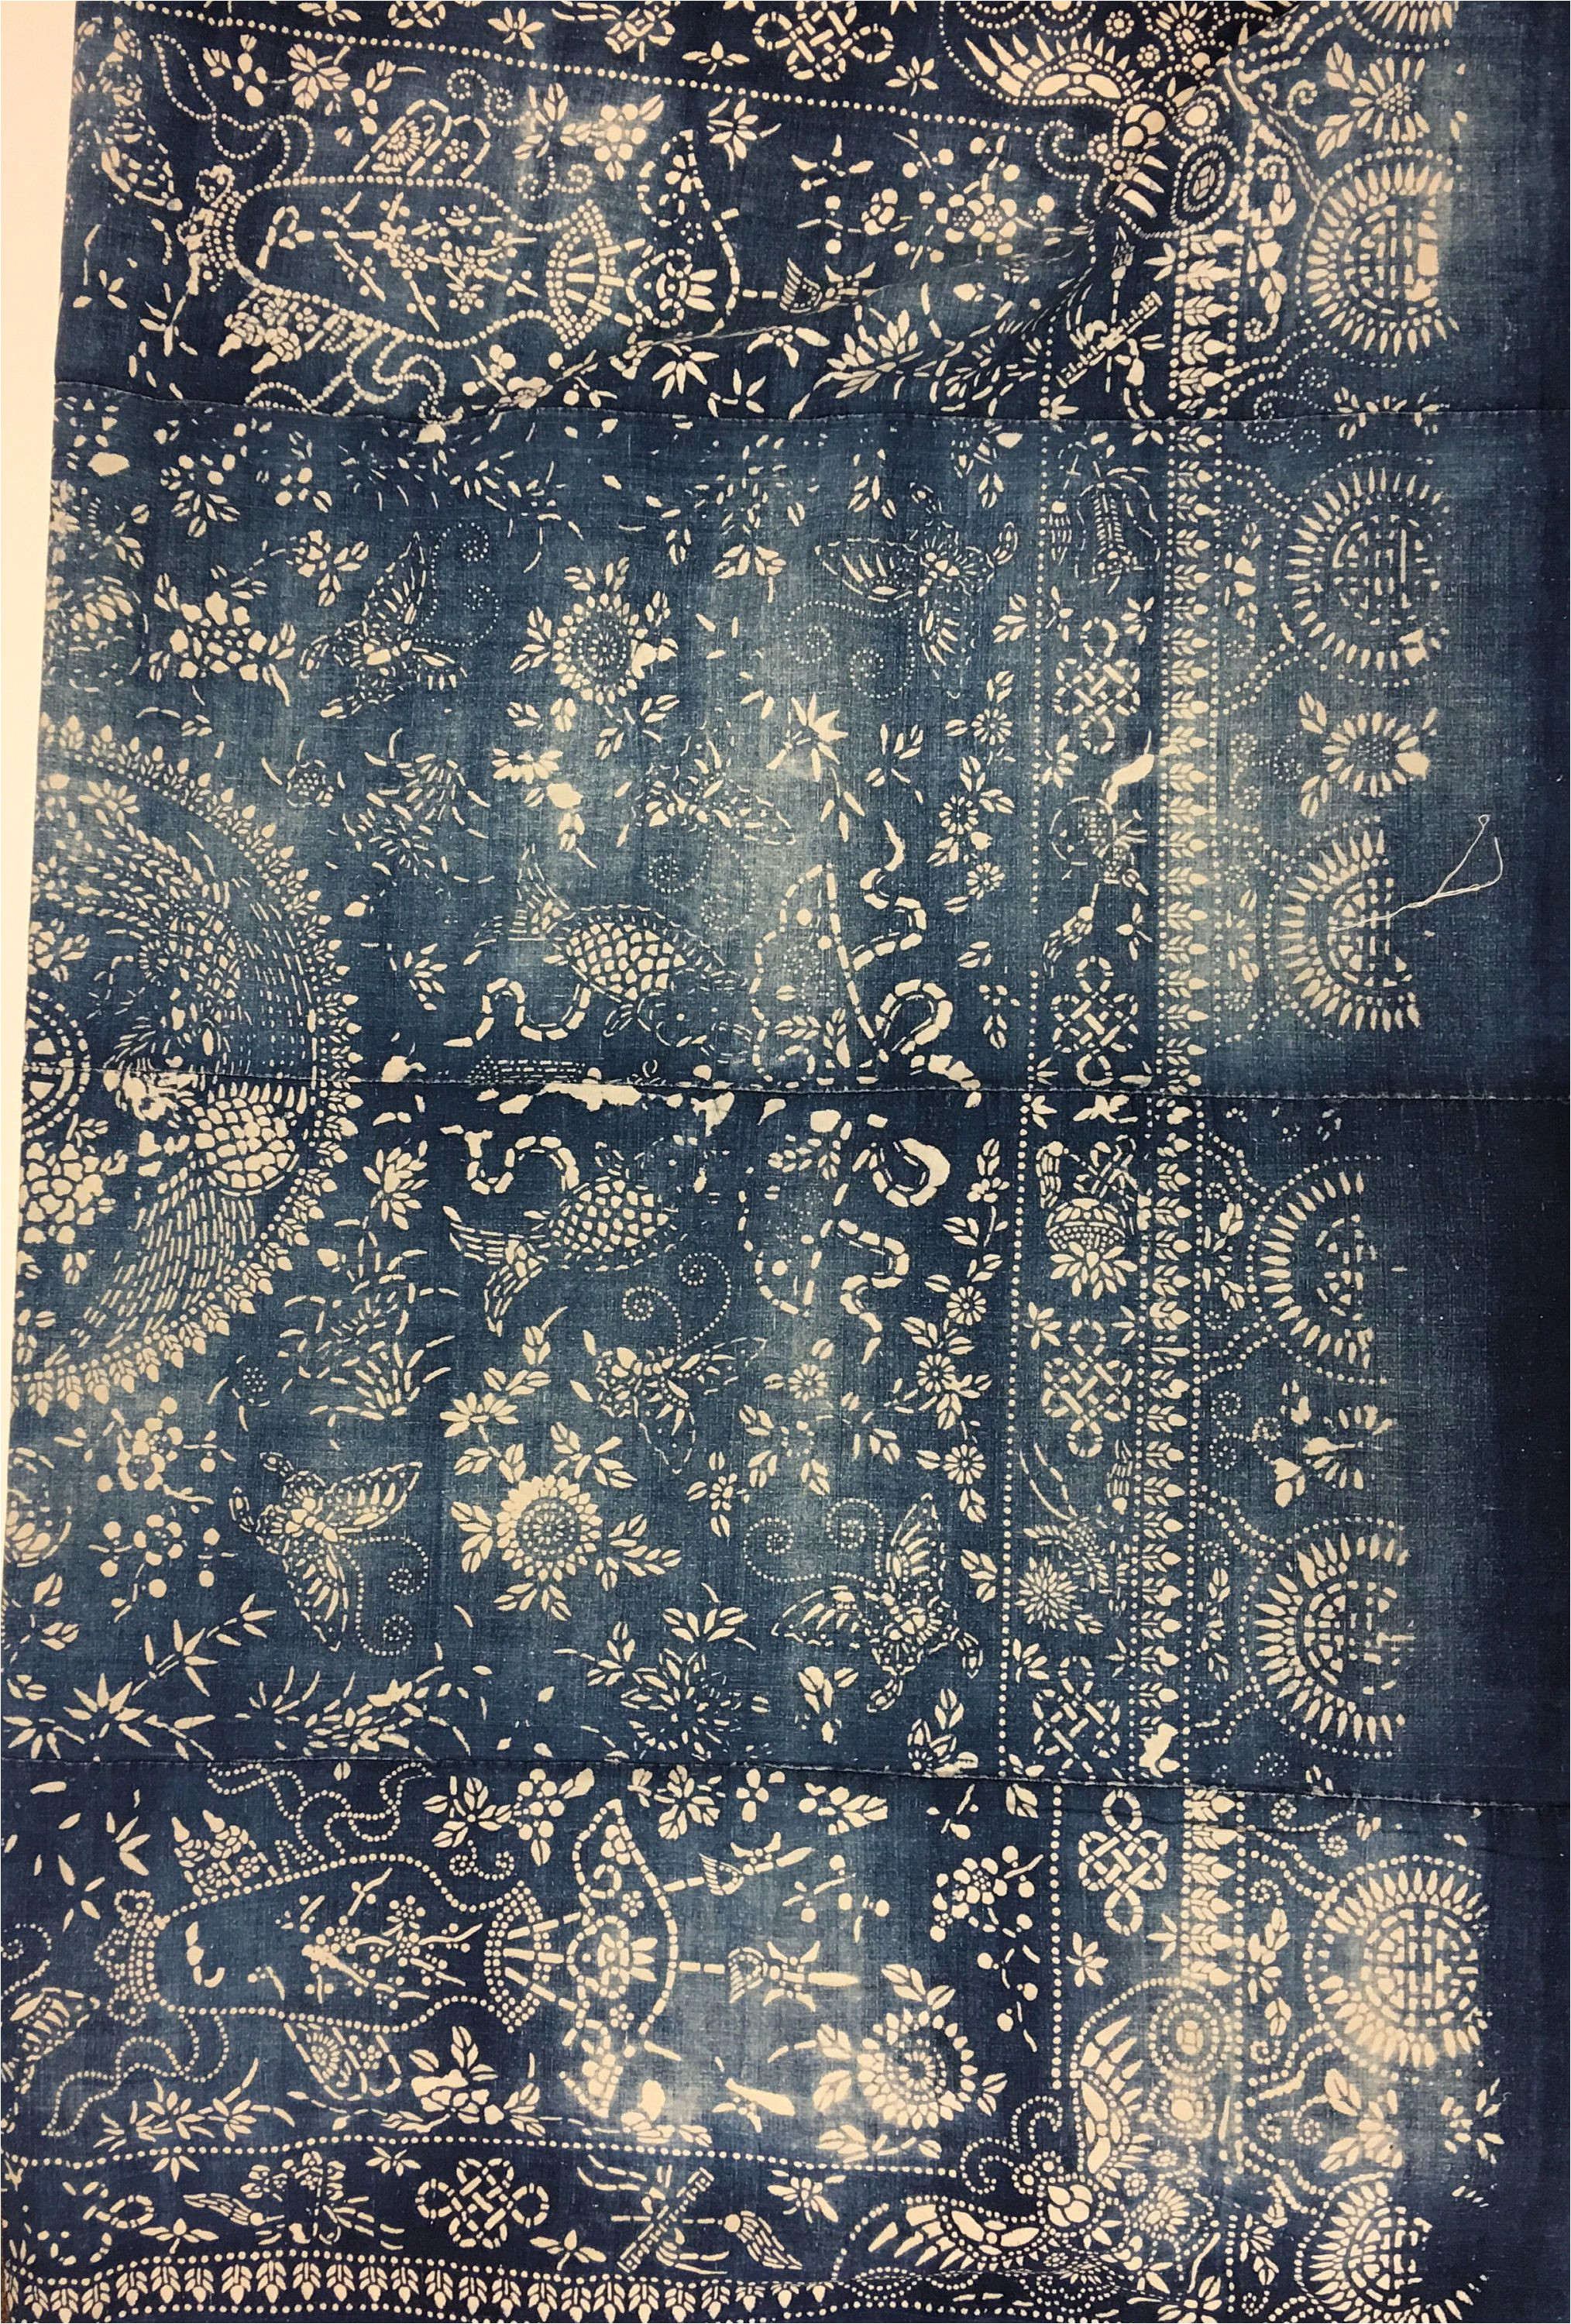 chinese indigo batik in extra large size fabric vintage chinese bedcover traditional chinoiserie boho decor by morrisseyfabric on etsy